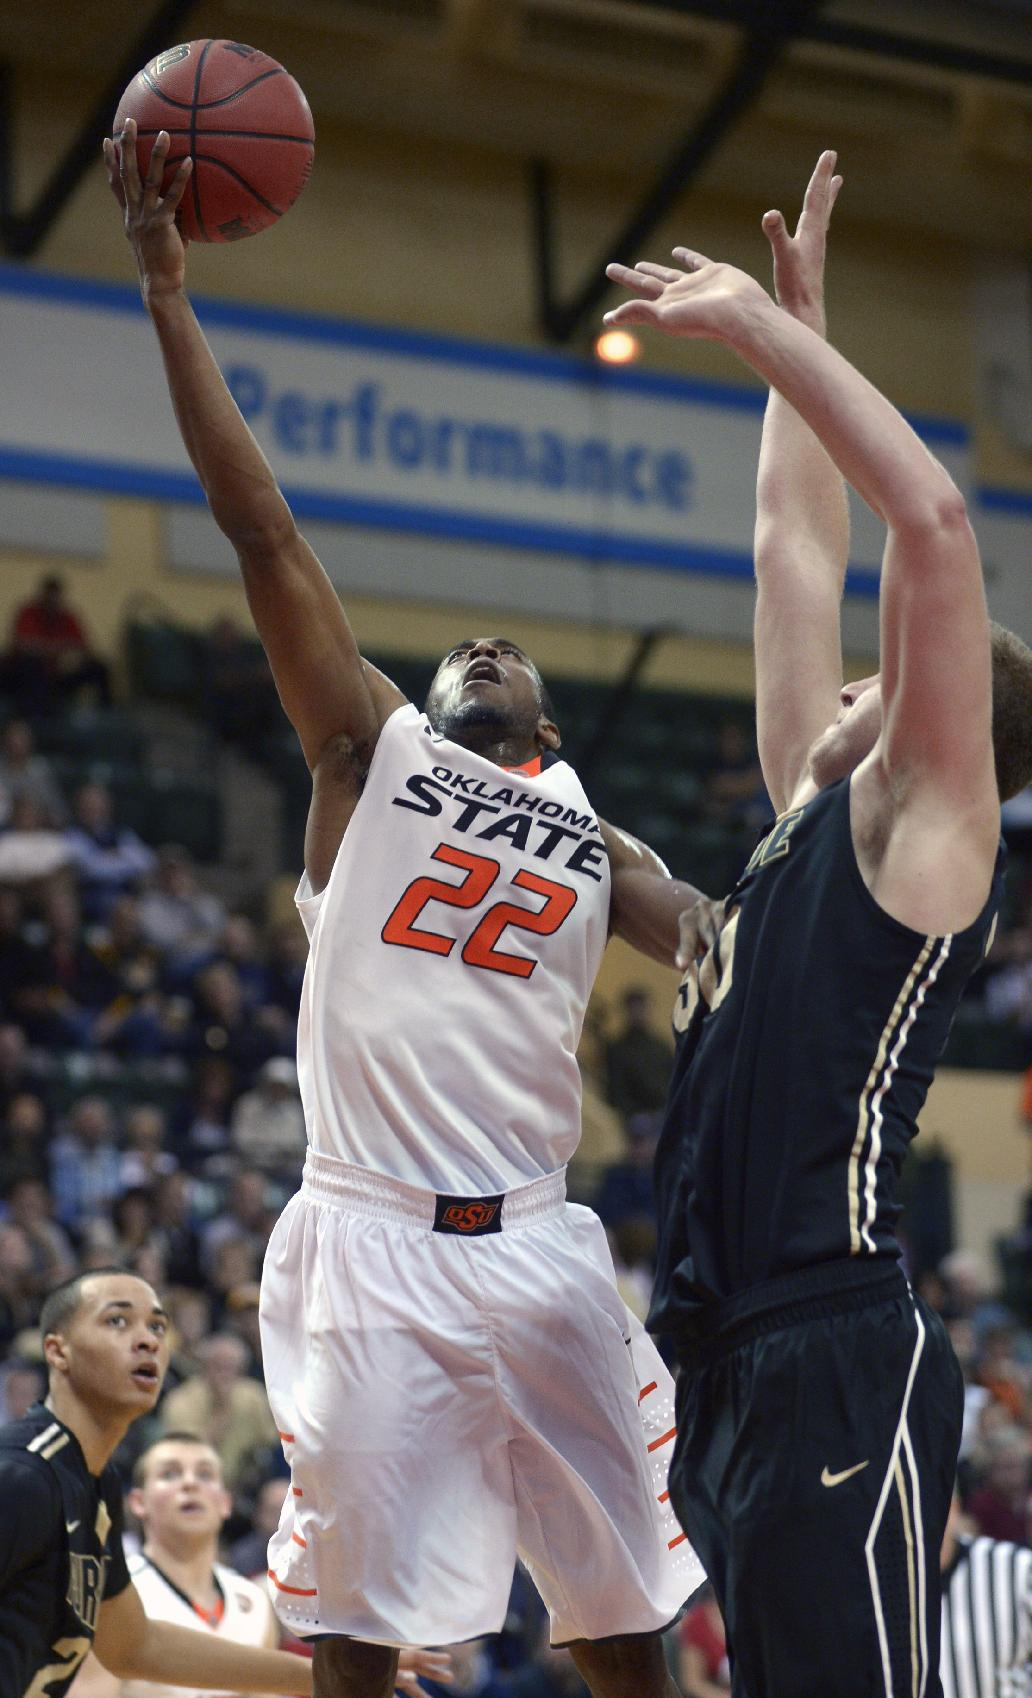 Oklahoma State's Markel Brown (22) puts up a shot in front of Purdue forward Travis Carroll, right, during the second half of an NCAA college basketball game in Kissimmee, Fla., Thursday, Nov. 28, 2013